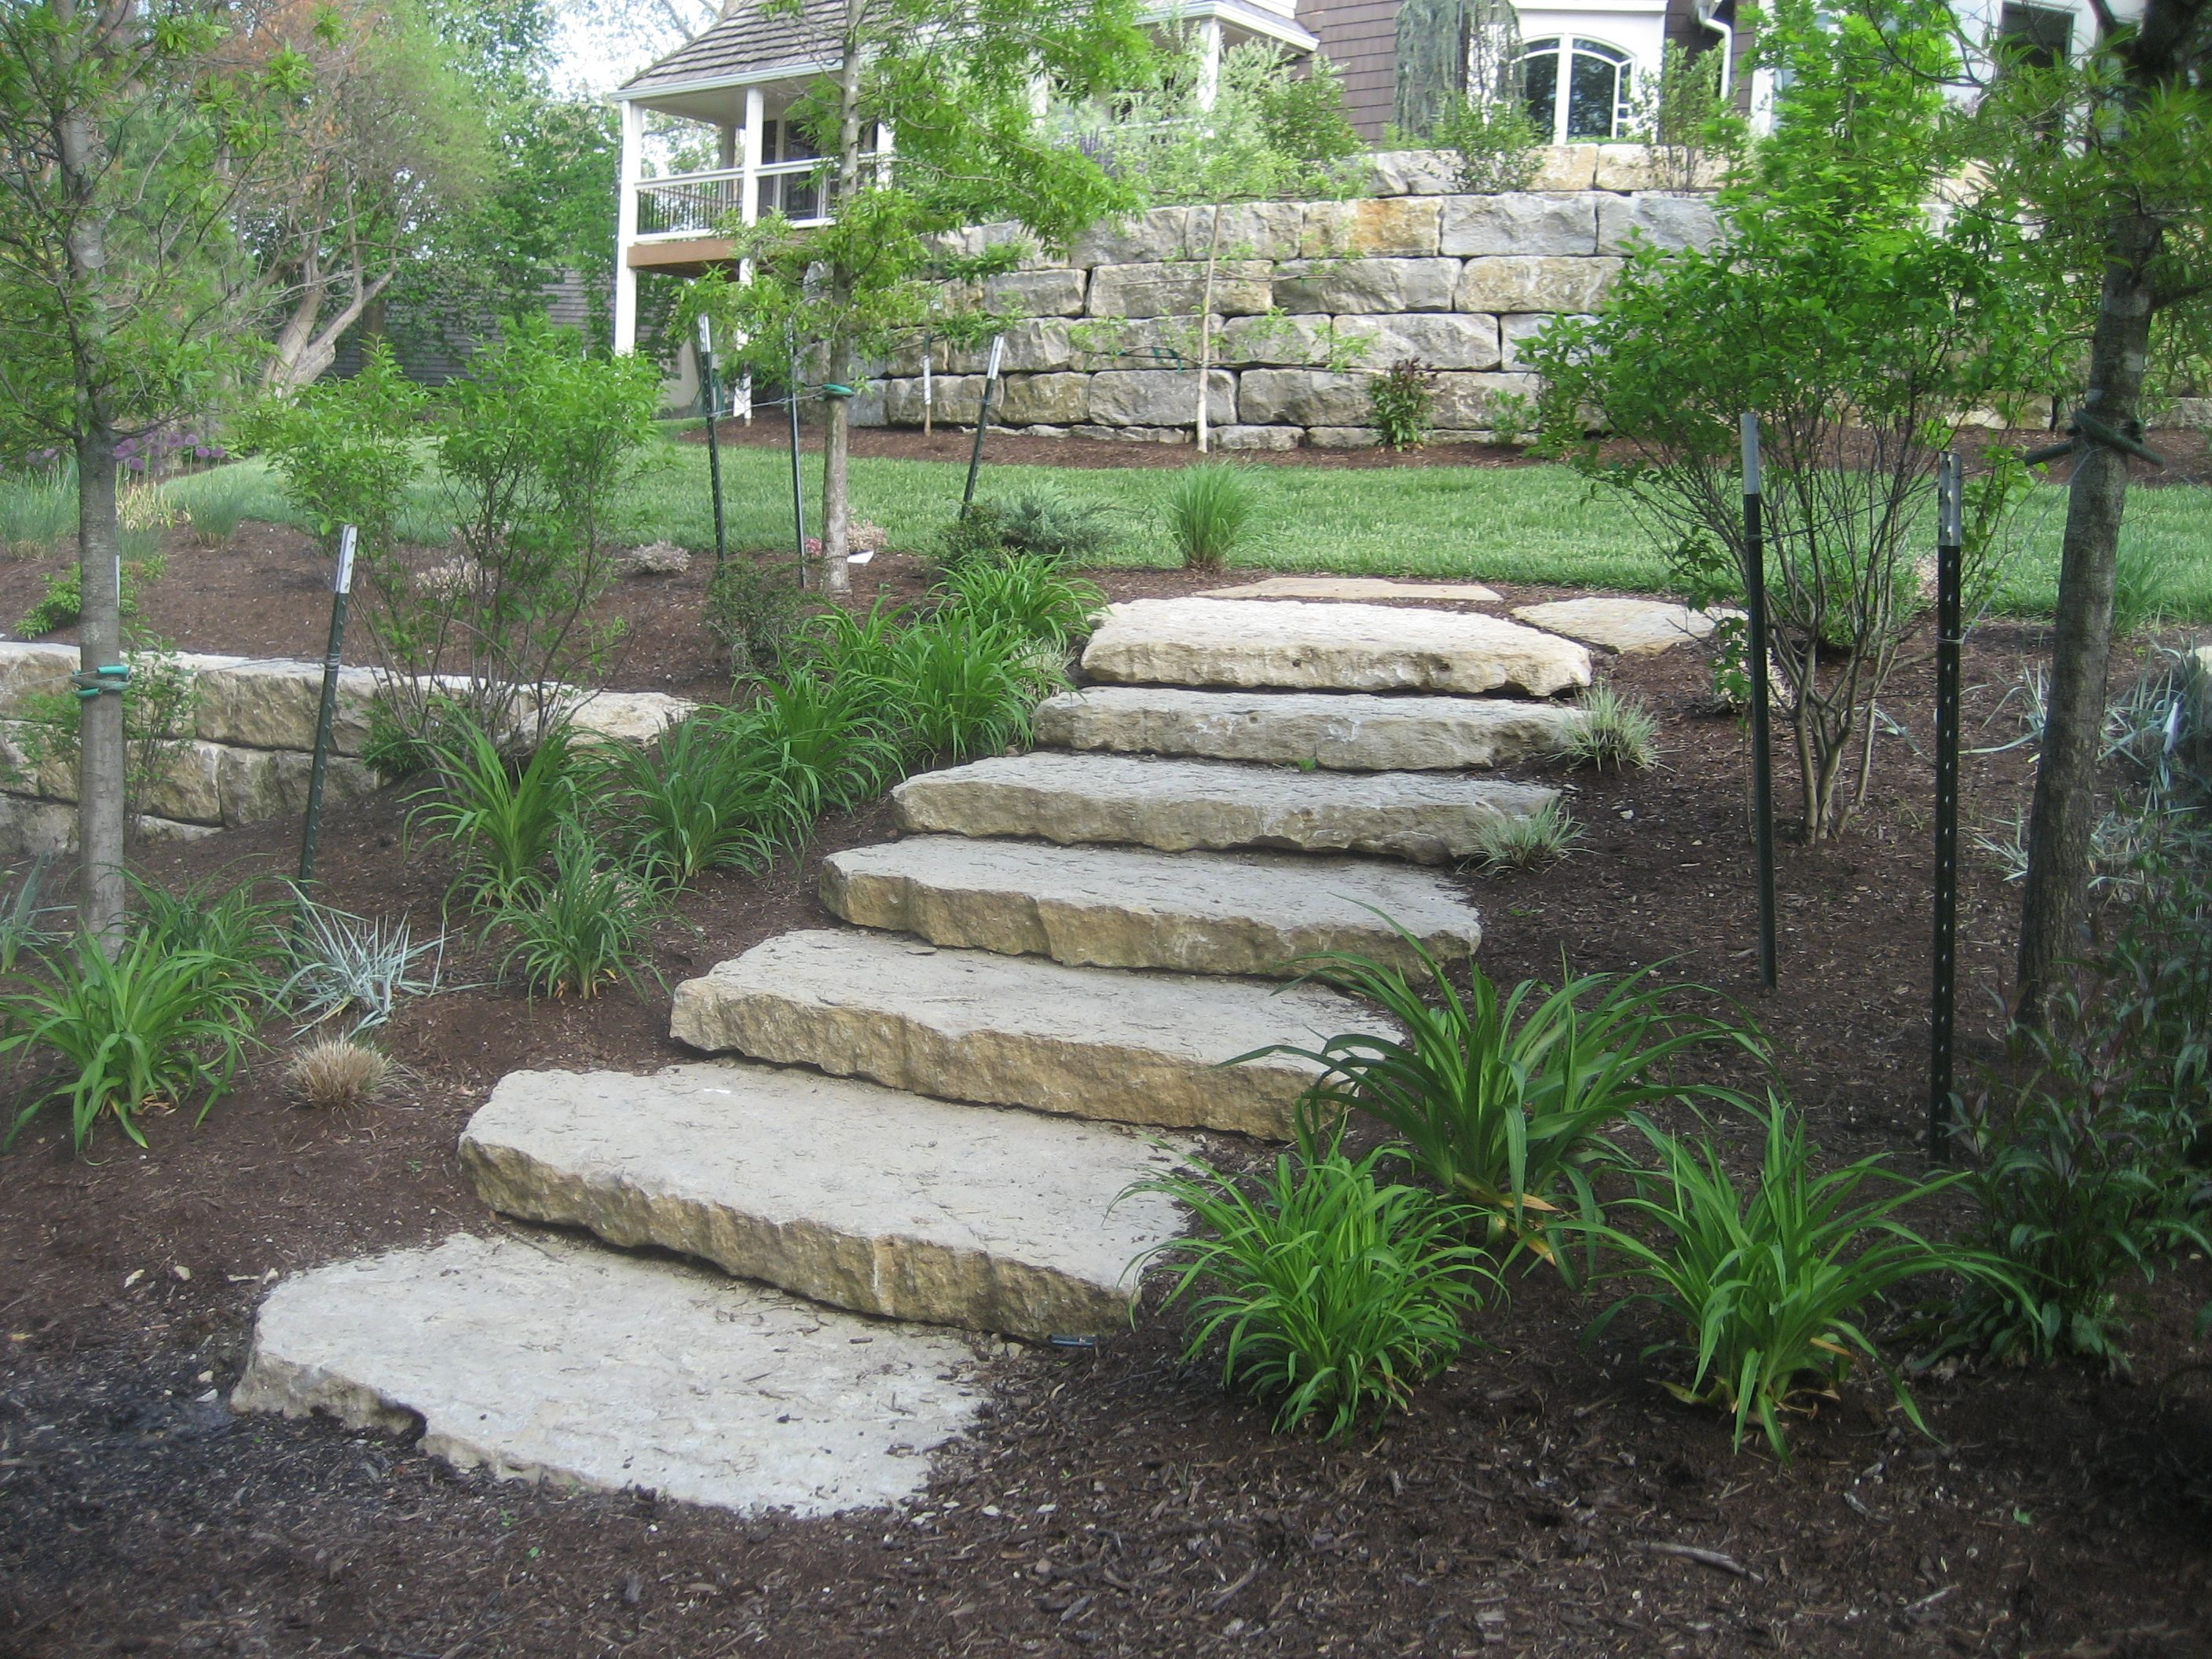 Ledge Stone Steps Transition Between Garden Terraces